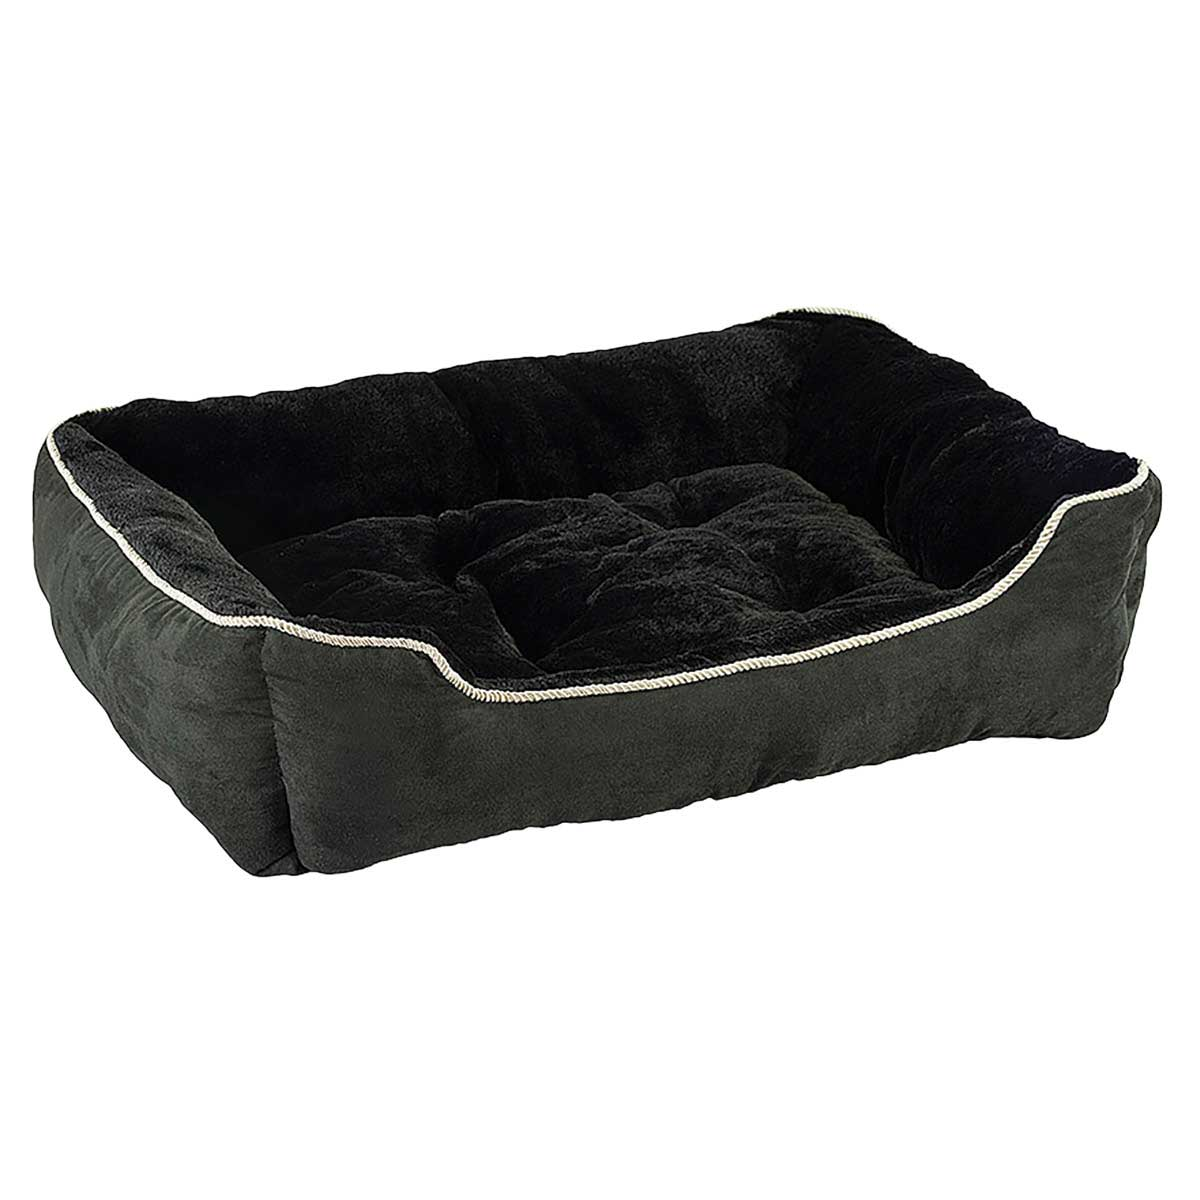 28 inch Sleep Zone Step-In Cuddler Slumber Pet Bed Faux Suede Black